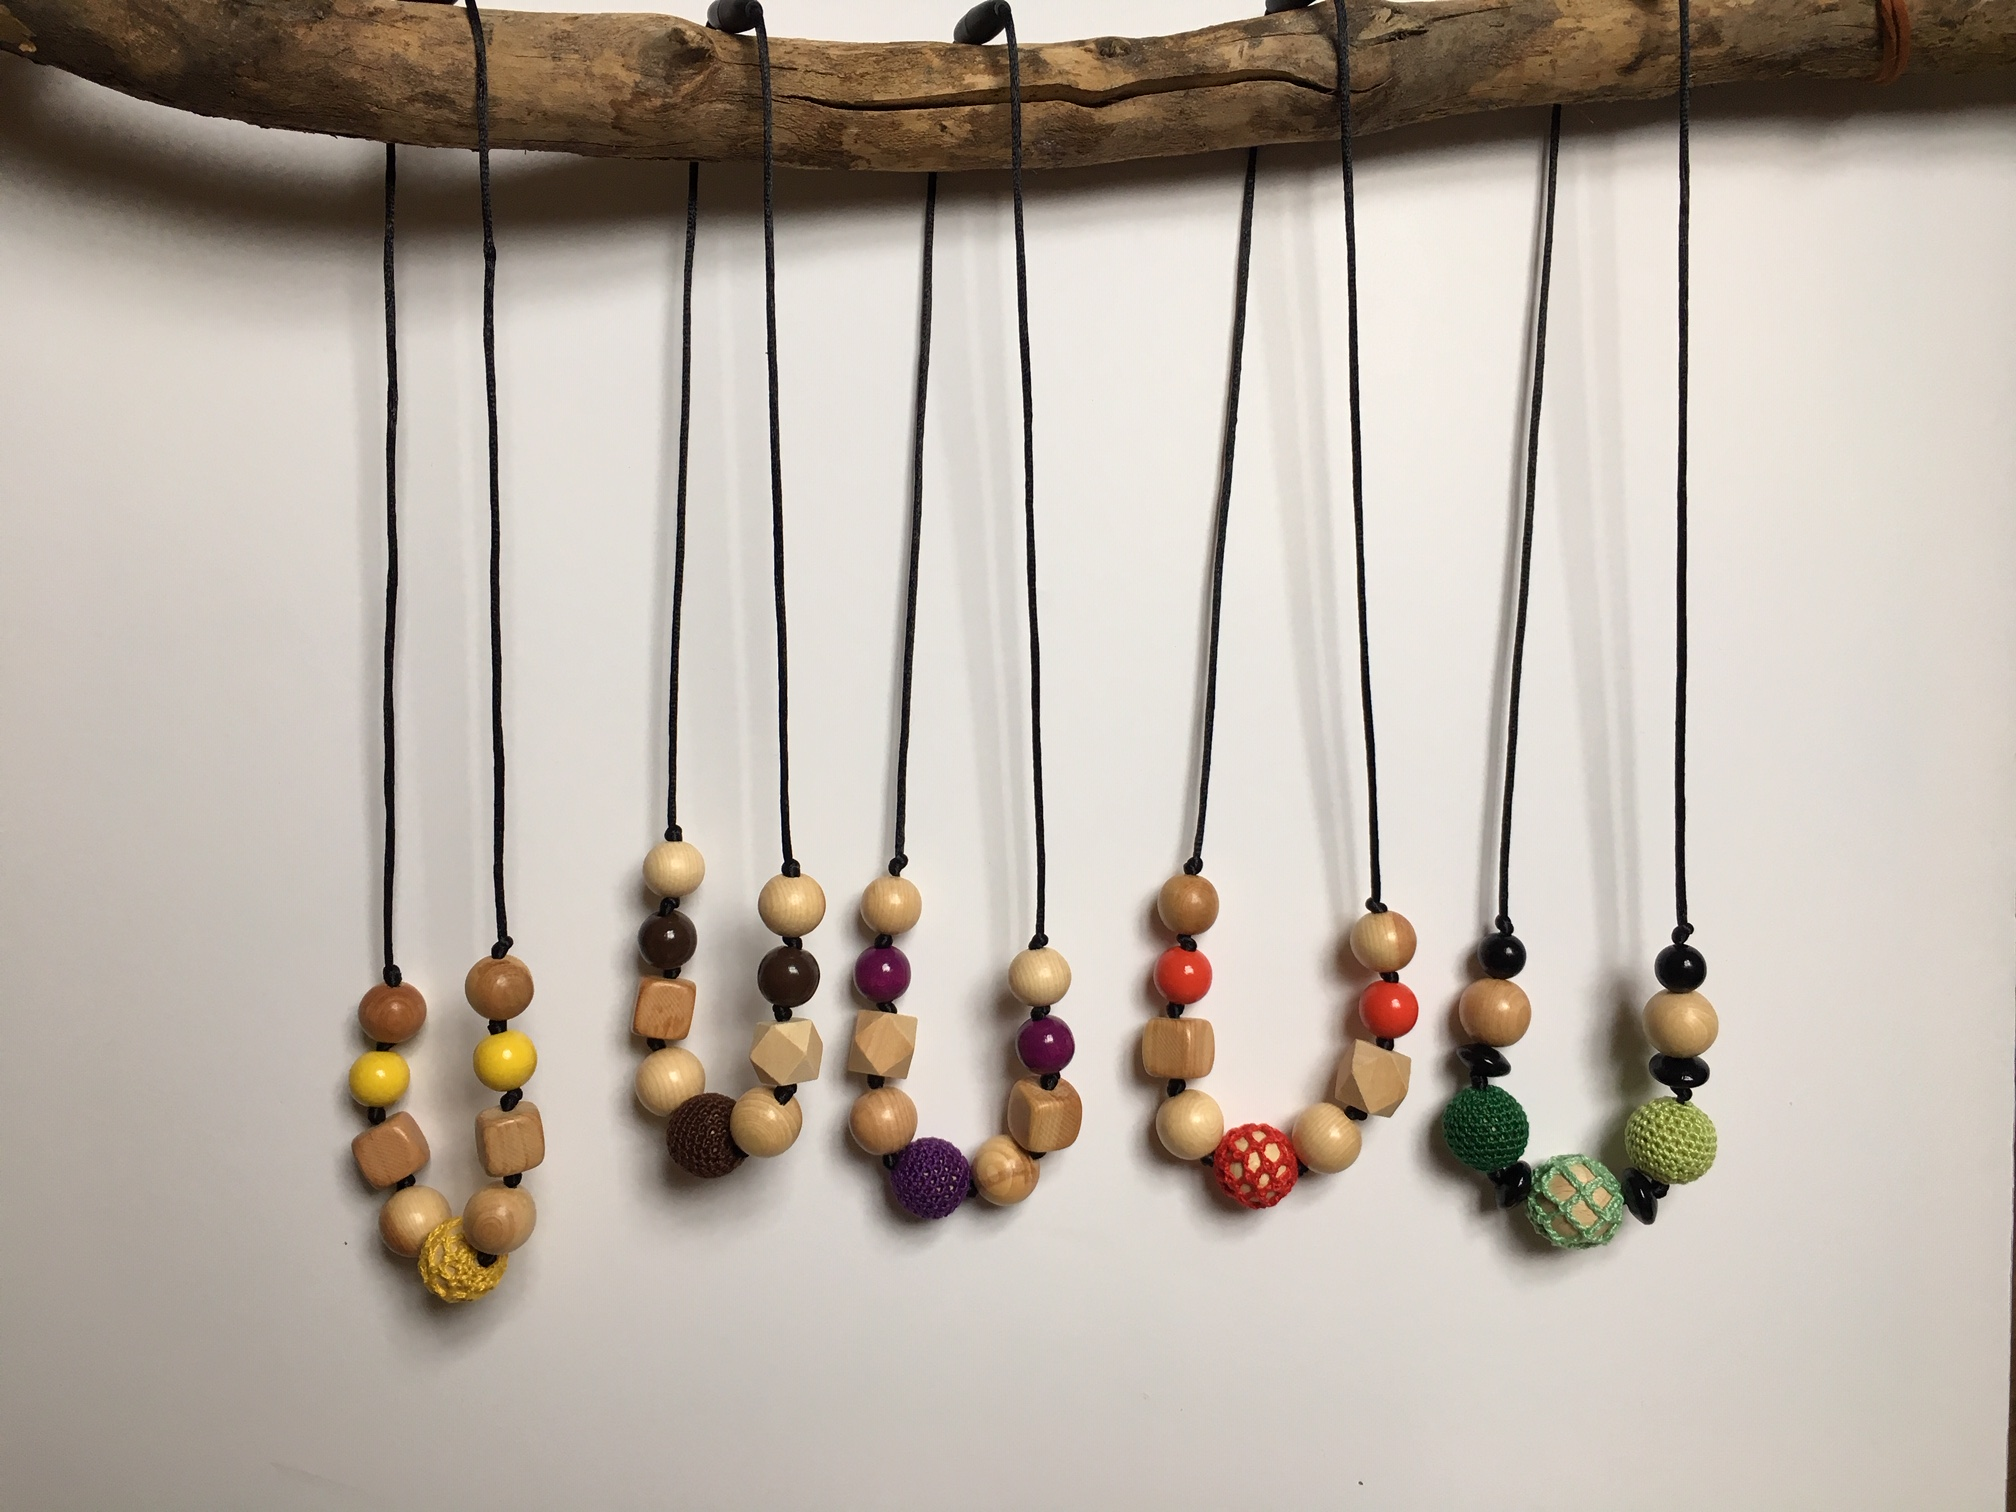 Breastfeeding necklaces - By Petit Pommier Creations